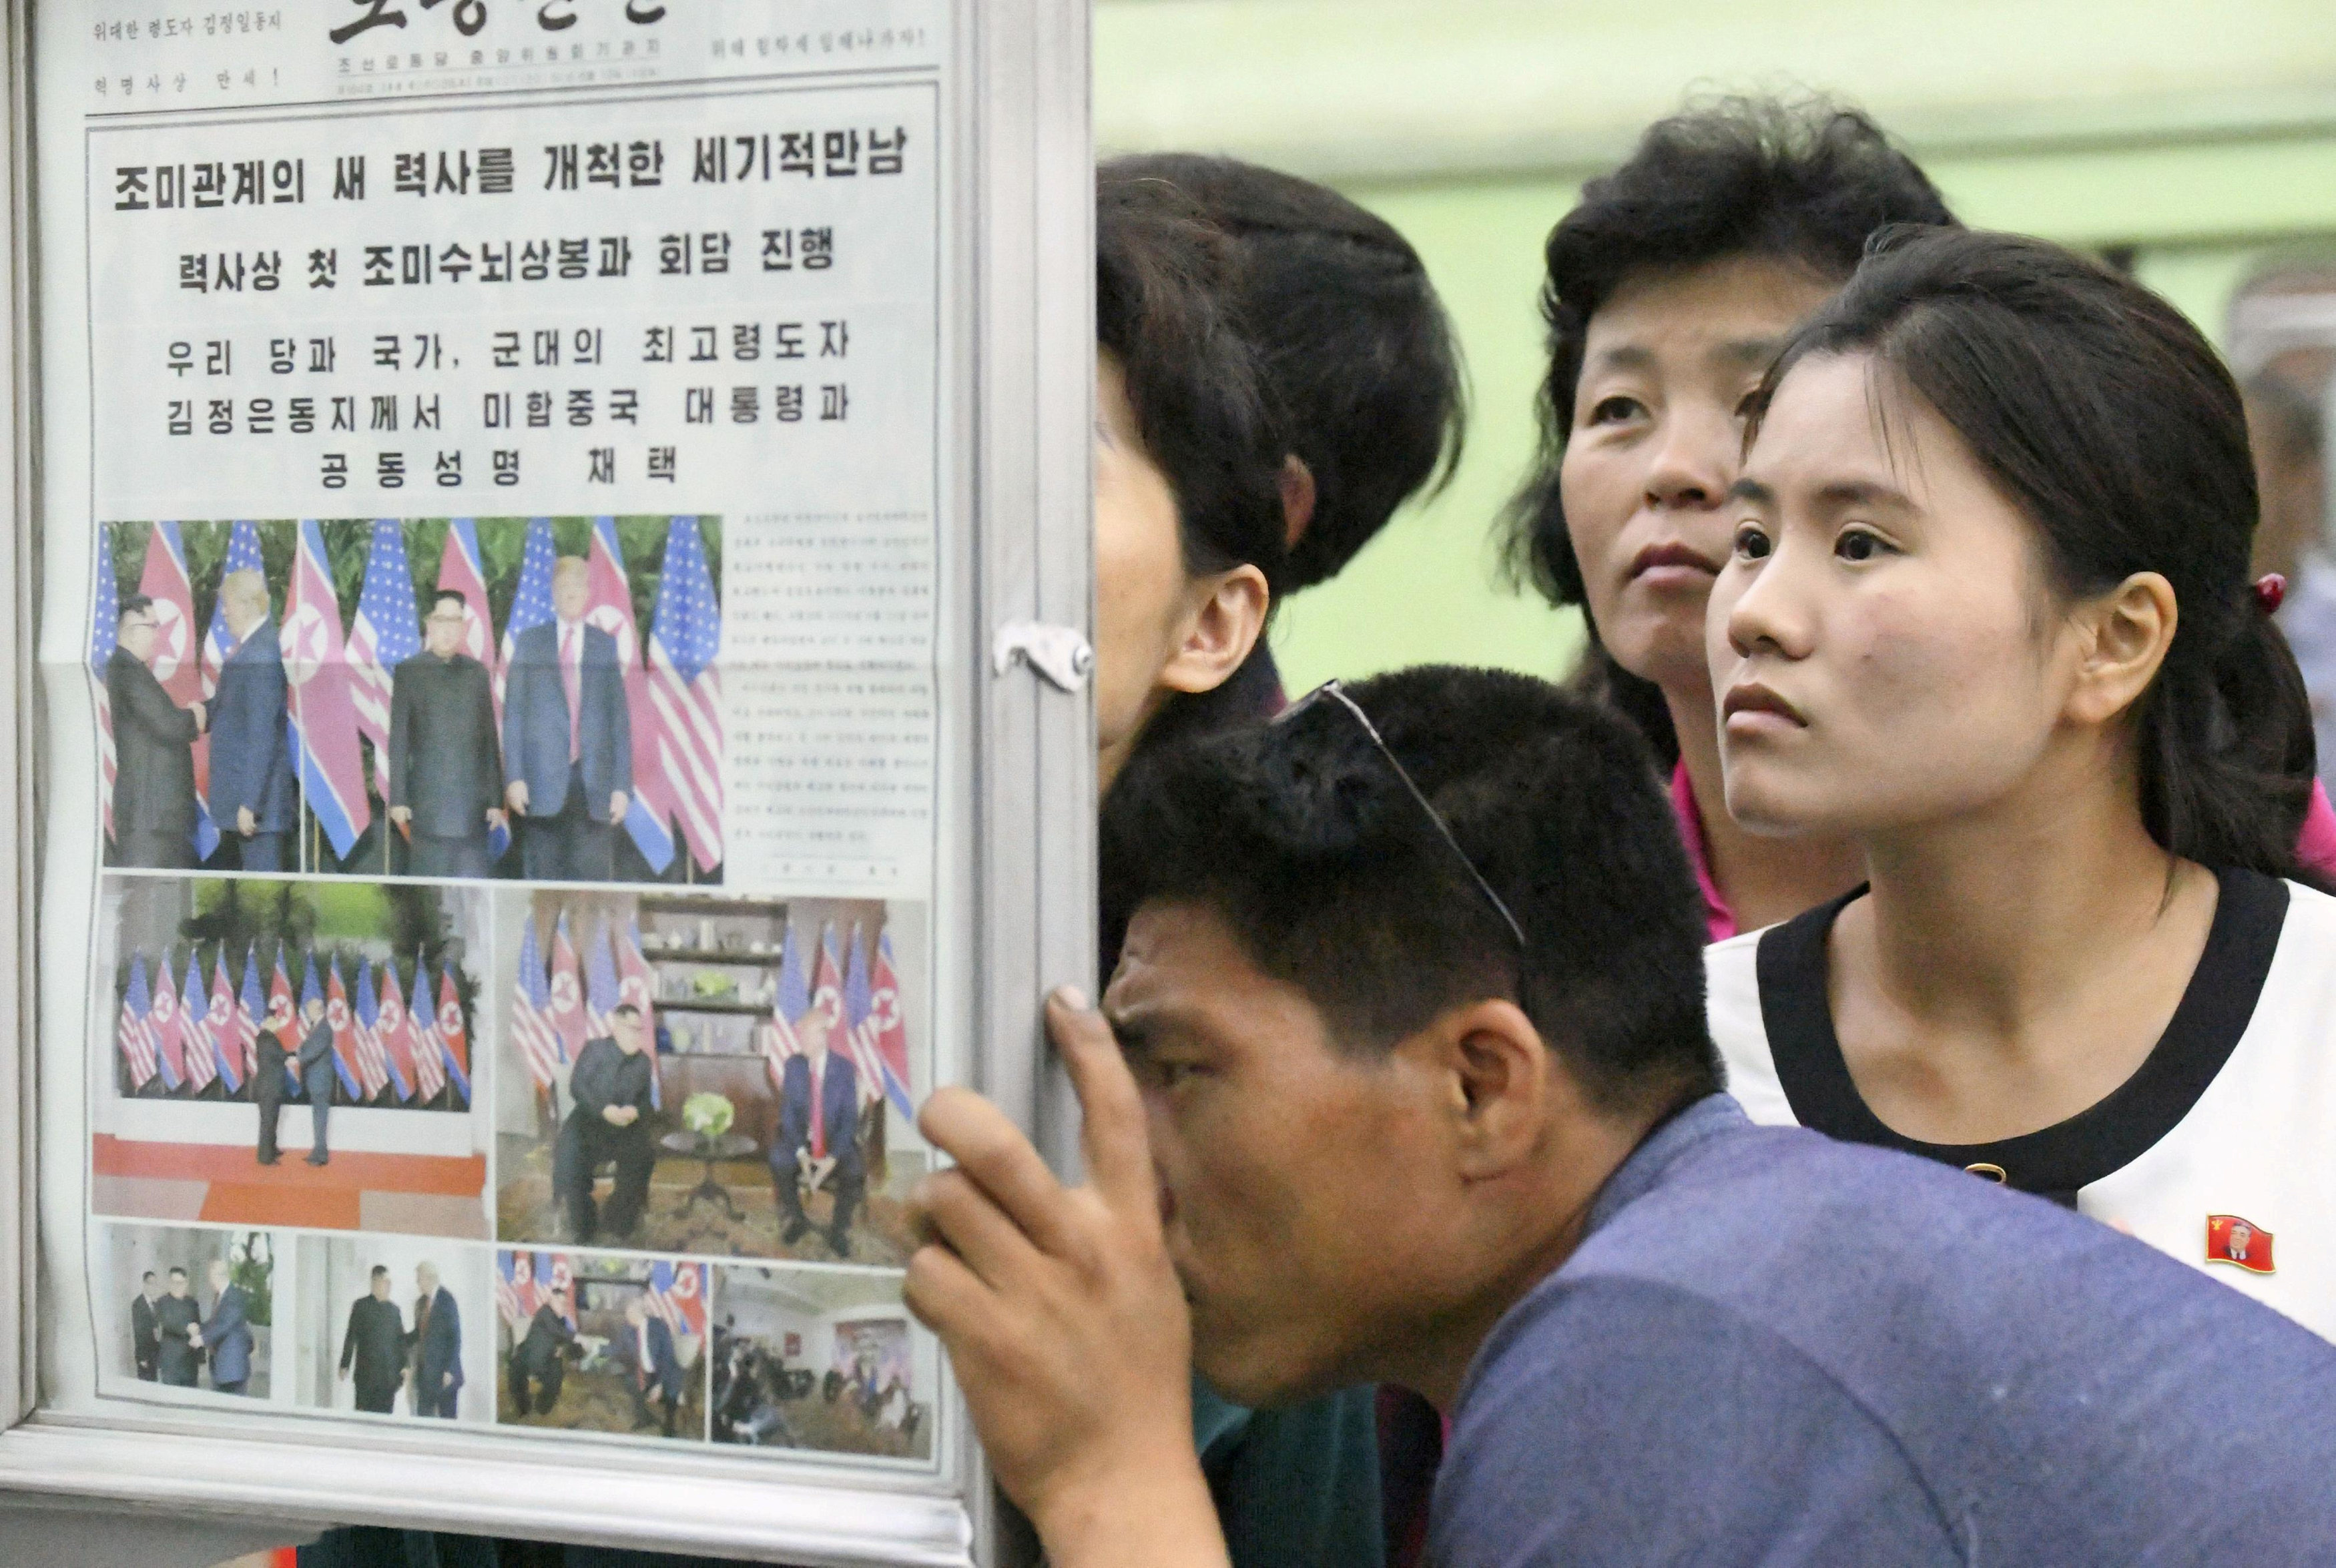 North Koreans watch the displayed local newspapers reporting the summit between the U.S. and North Korea at a subway station in Pyongyang, North Korea, in this photo taken by Kyodo June 13, 2018. Mandatory credit Kyodo/via REUTERS